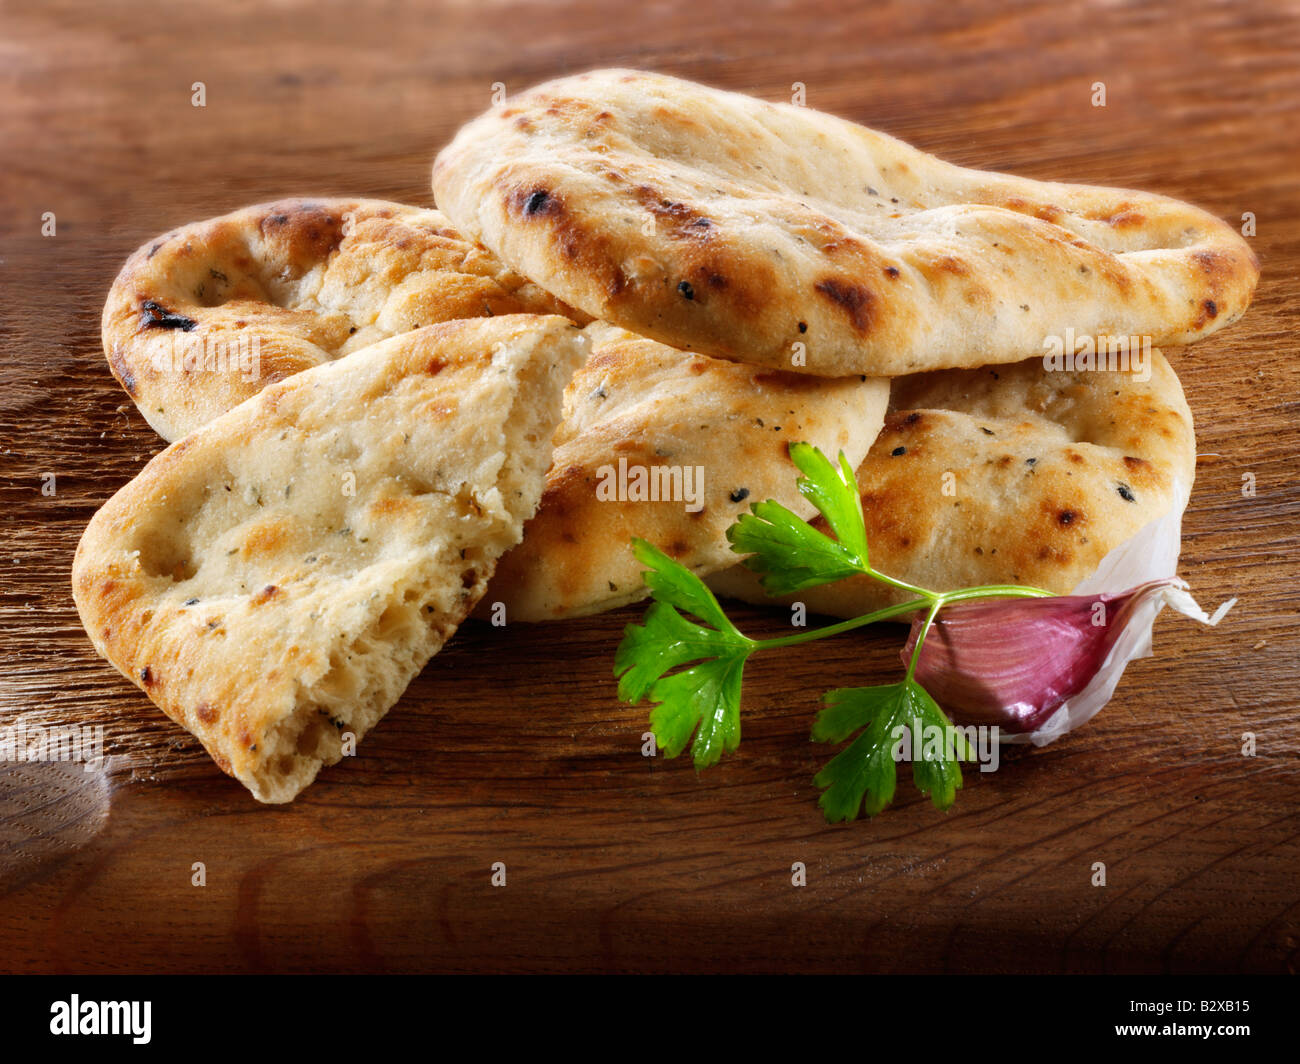 Garlic and coriander Indian Naan Bread - Stock Image